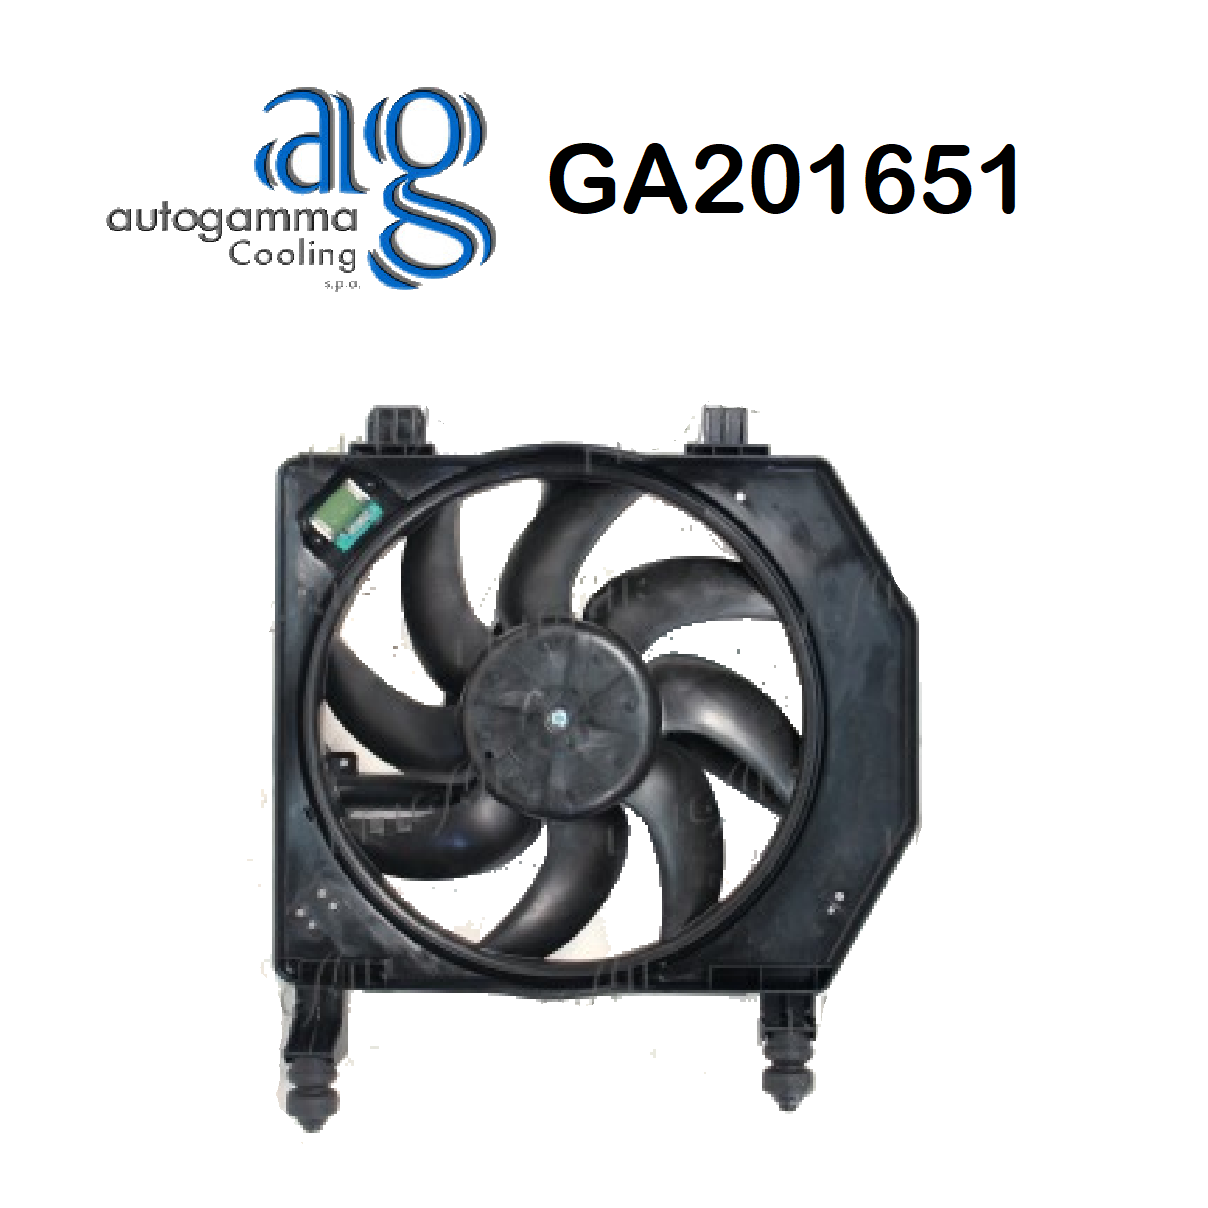 FORD FIESTA ENGINE COOLING FAN - PUMA AUTOGAMMA FOR 1017785